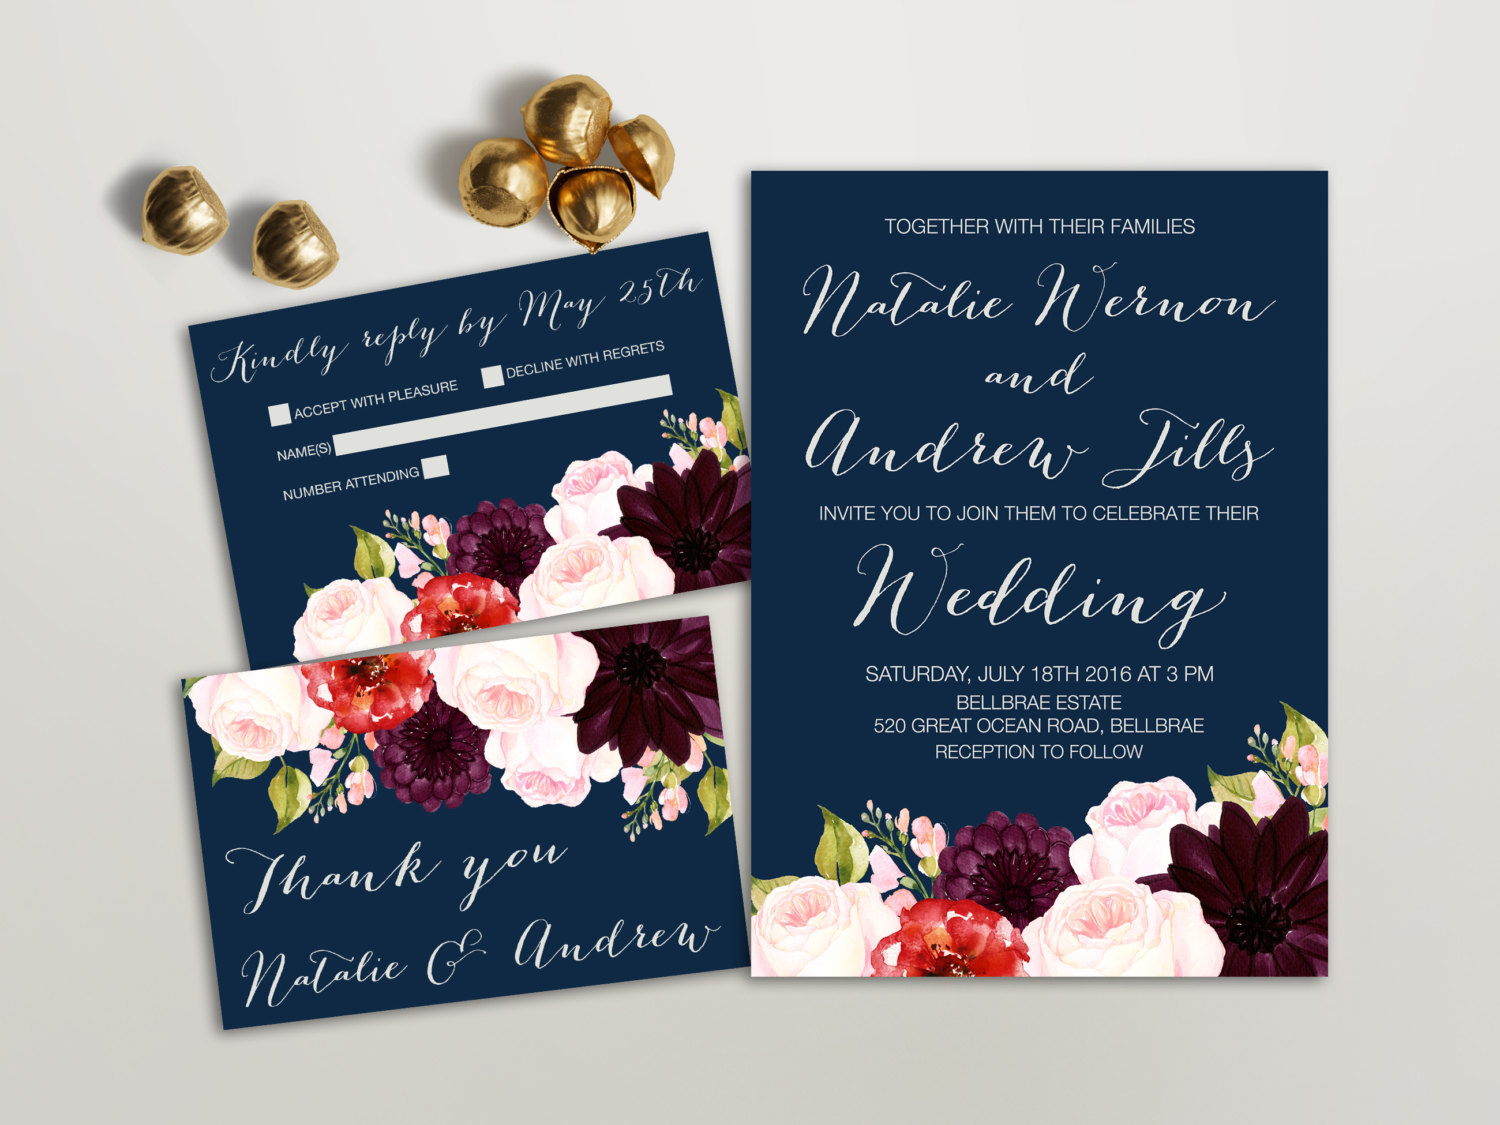 3.	Burgundy and Navy Blue Wedding Invites